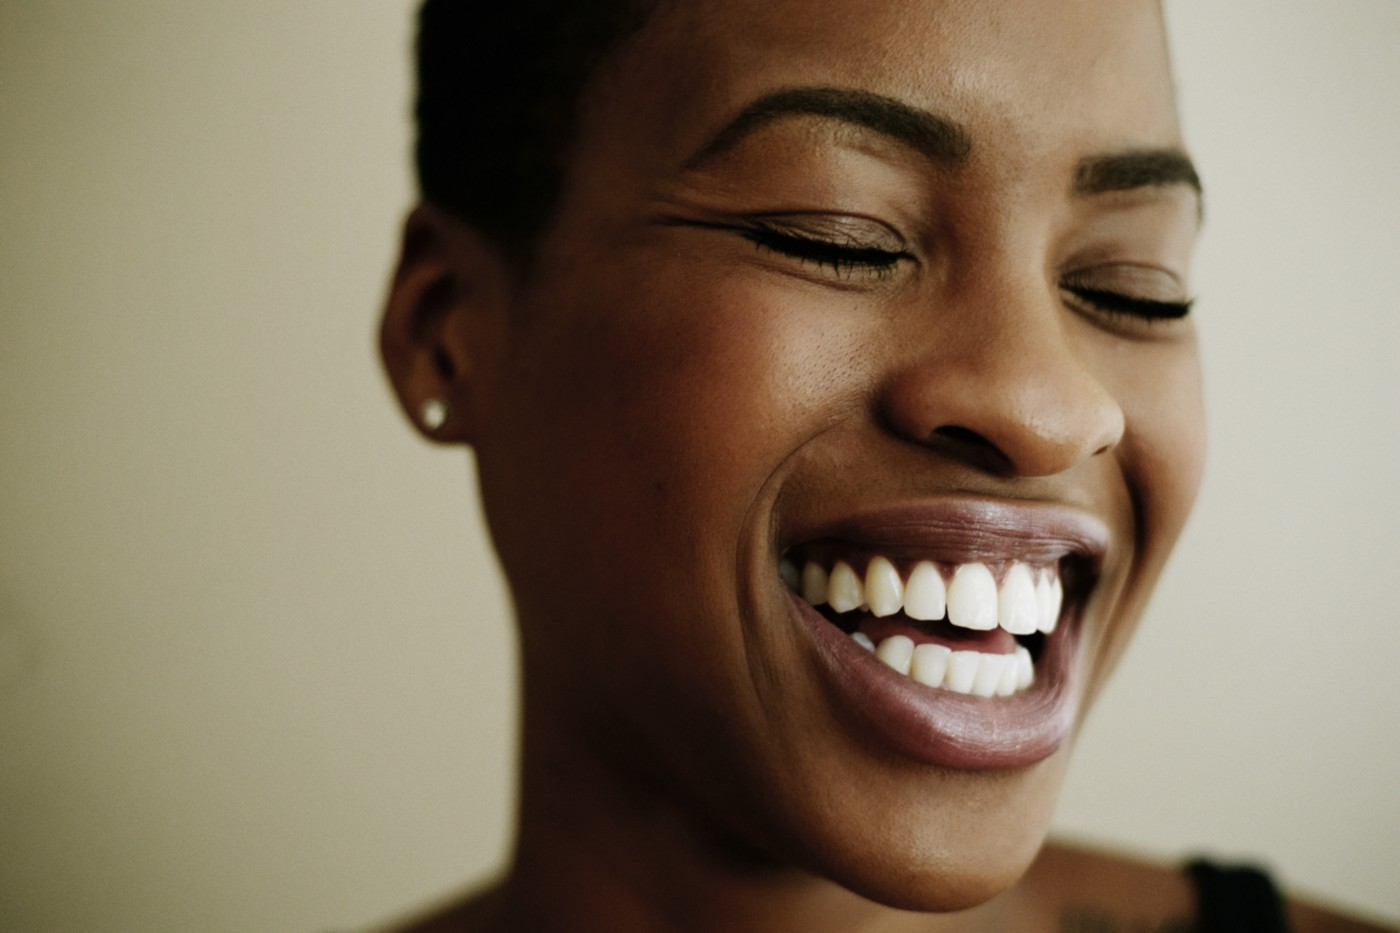 A closeup of a black woman smiling/laughing widely.